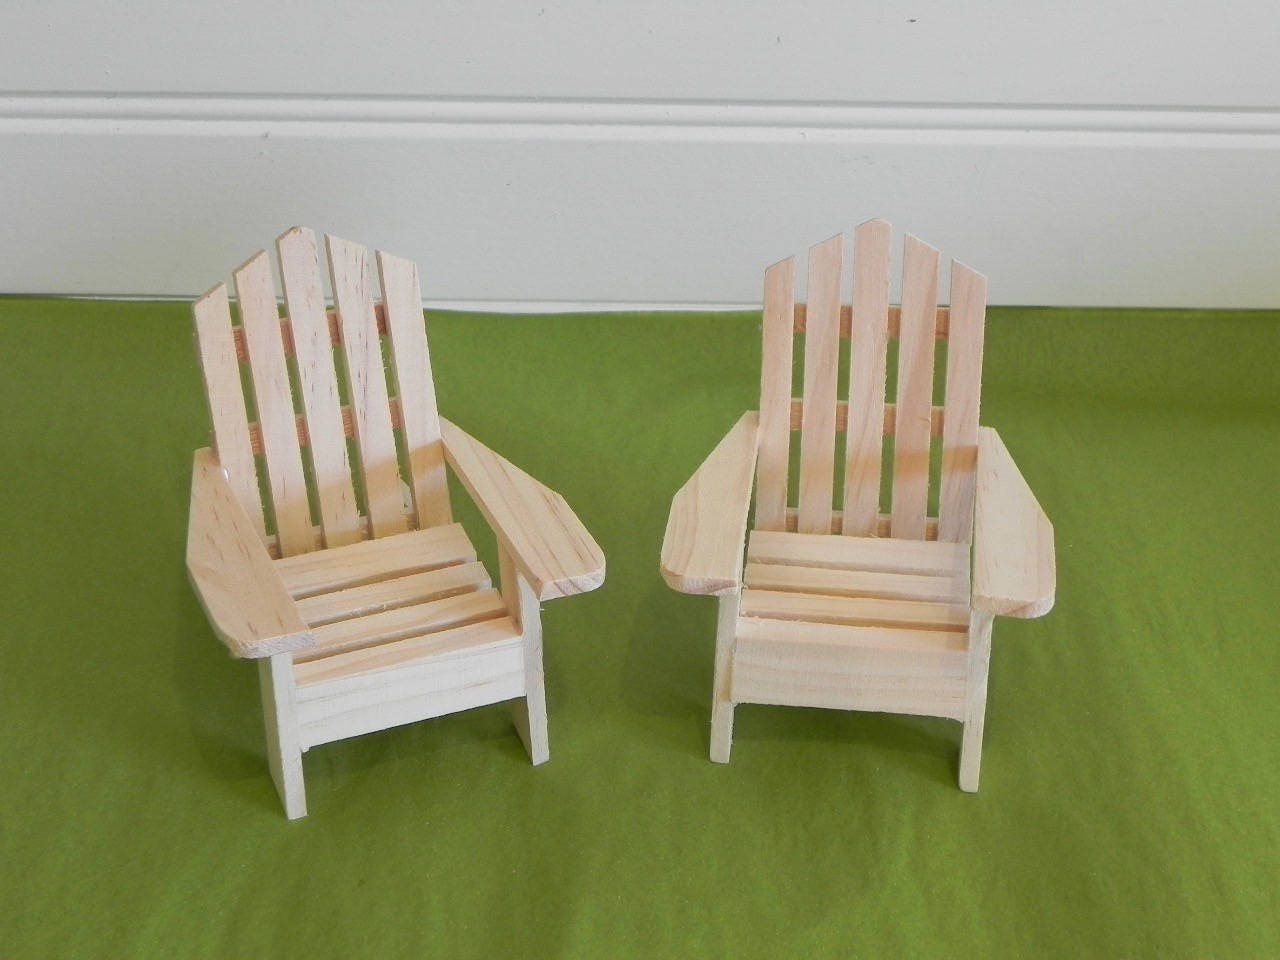 Adirondack Chair Miniature Ready To Paint Wood Supplies